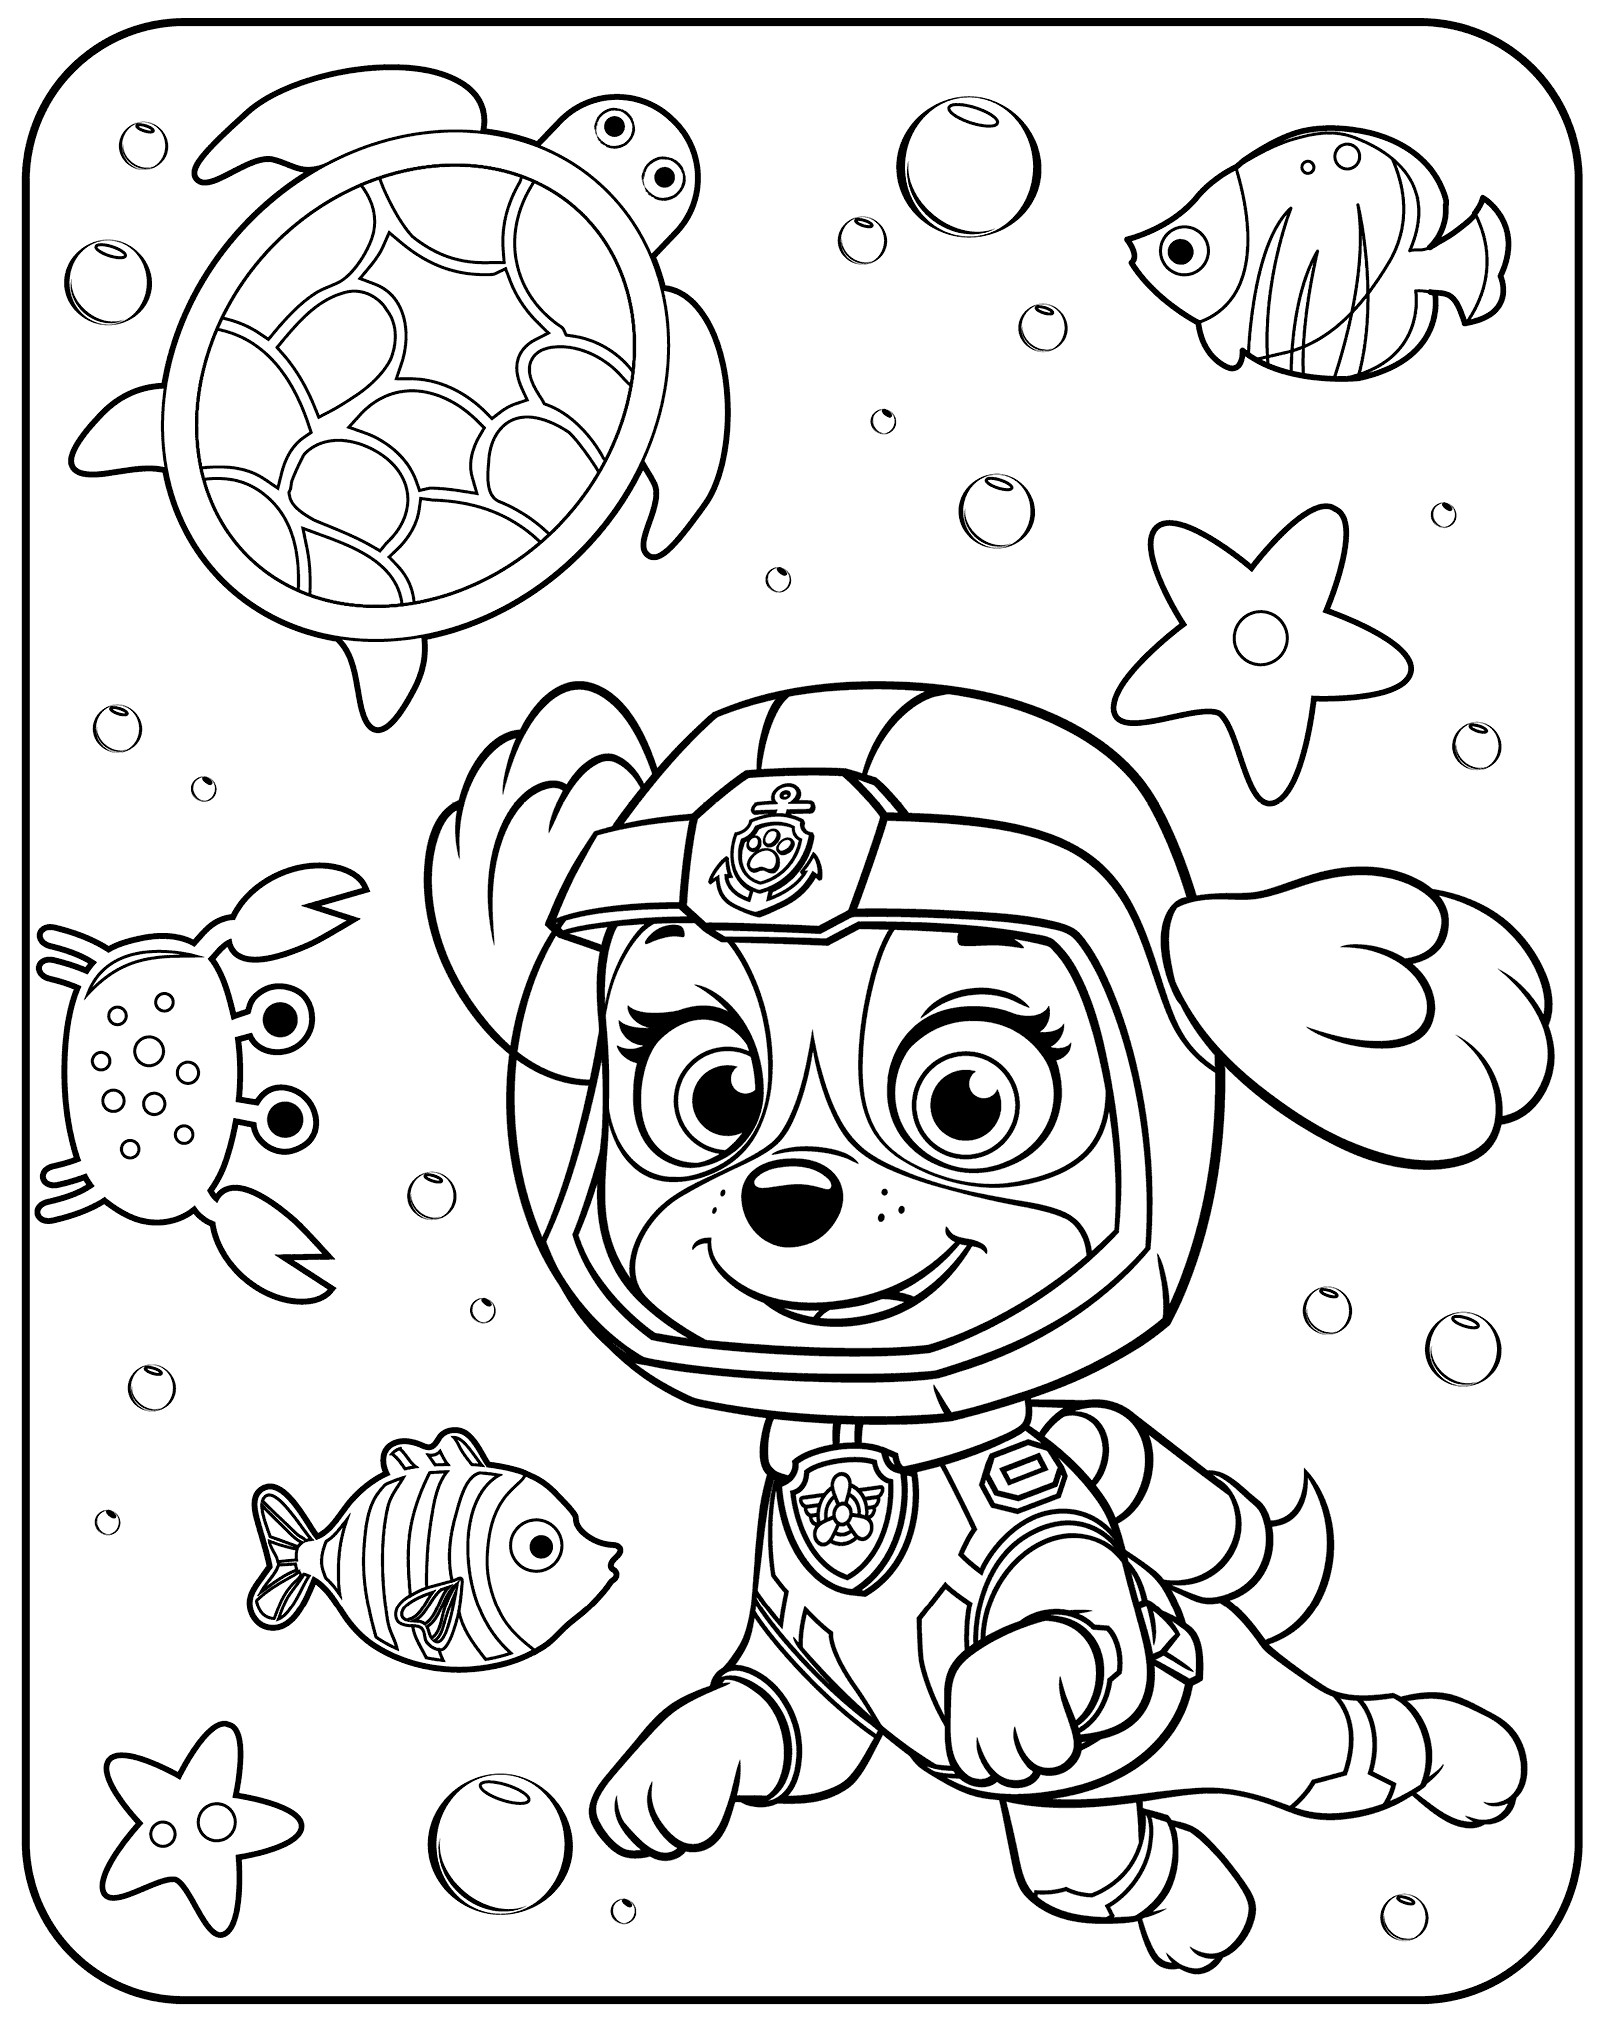 paw patrol printable pictures coloring pages printable paw patrol maltandmacabre paw printable patrol pictures